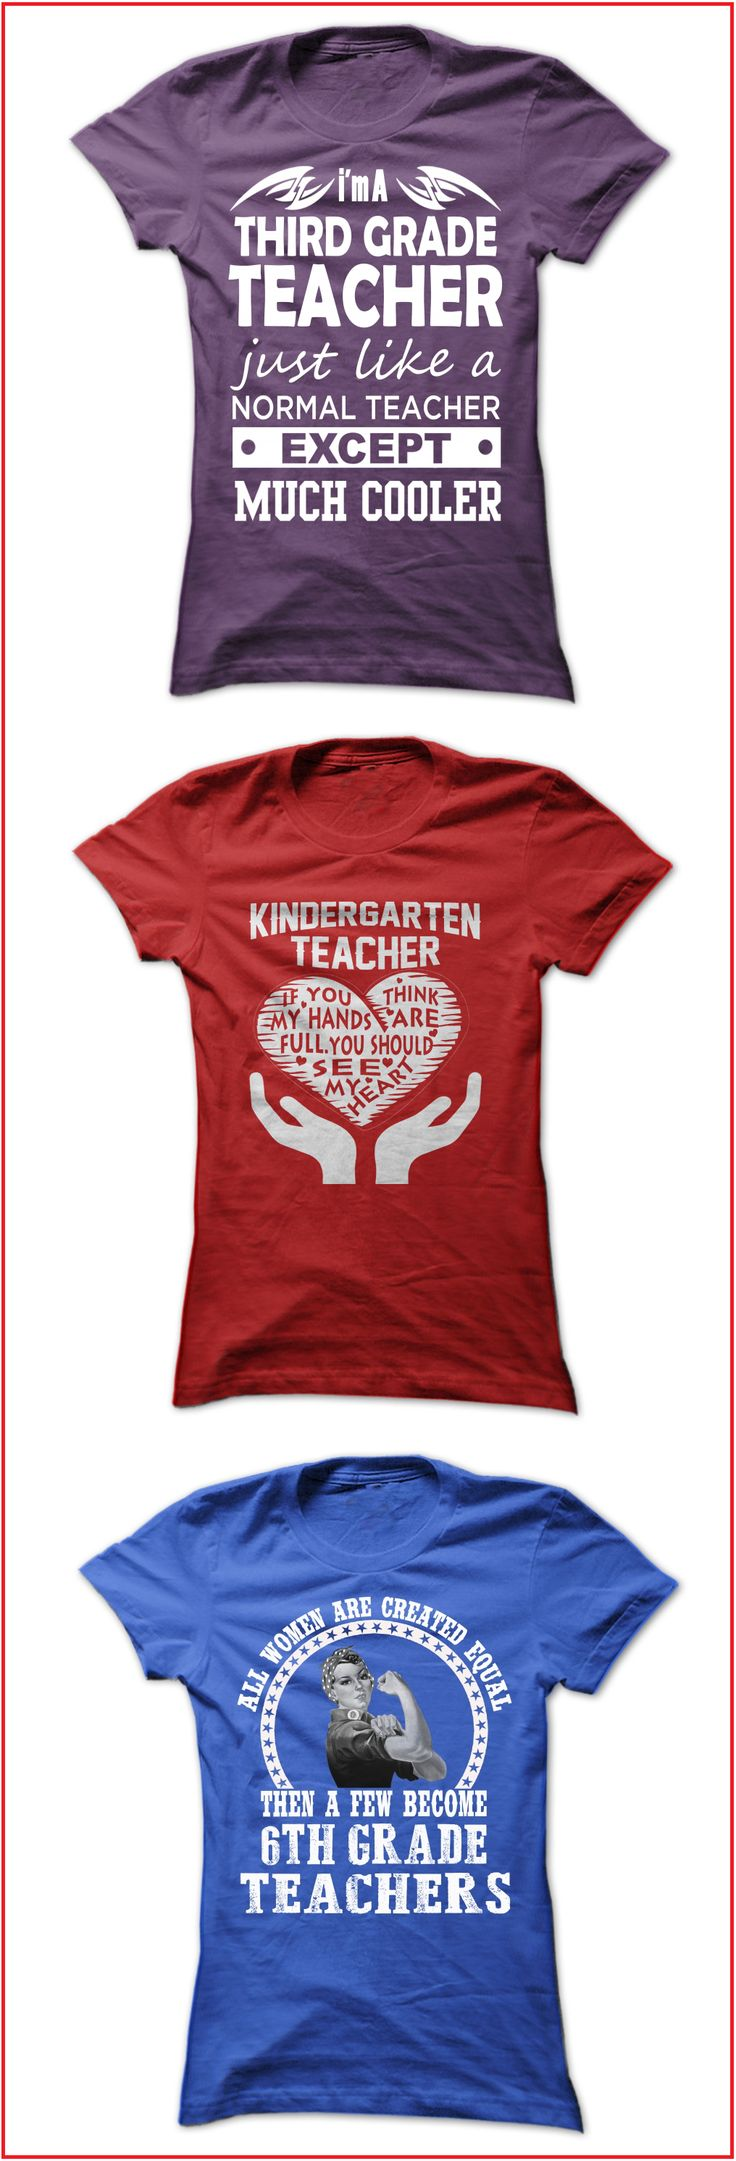 17 best images about school shirt ideas on pinterest